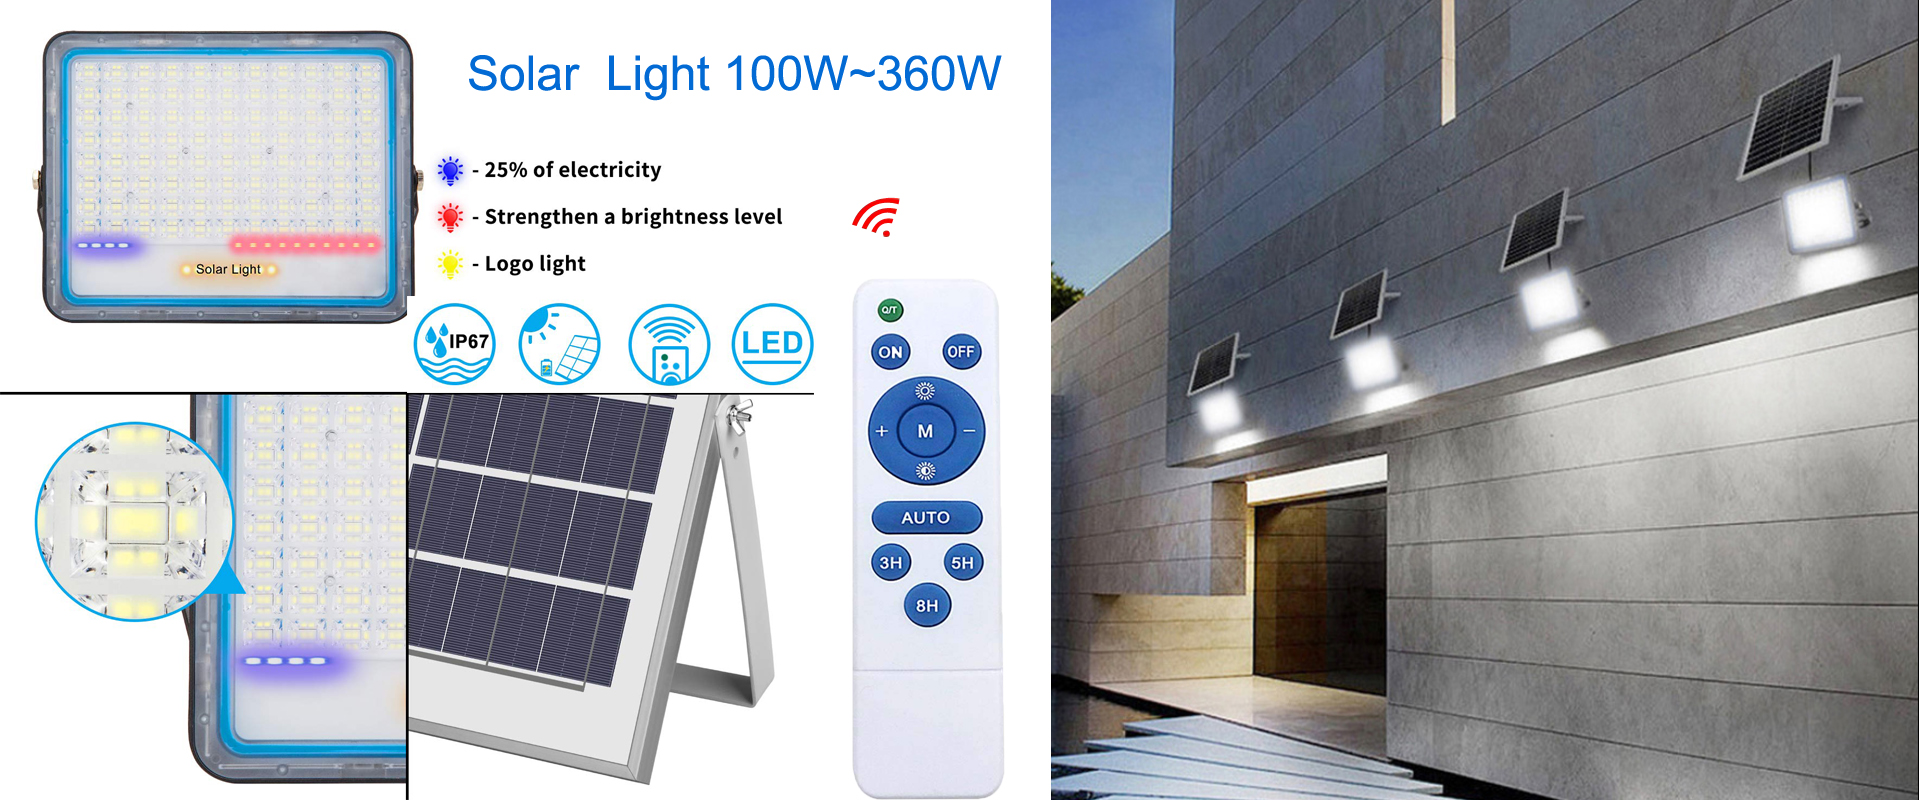 Solar flood light remote control